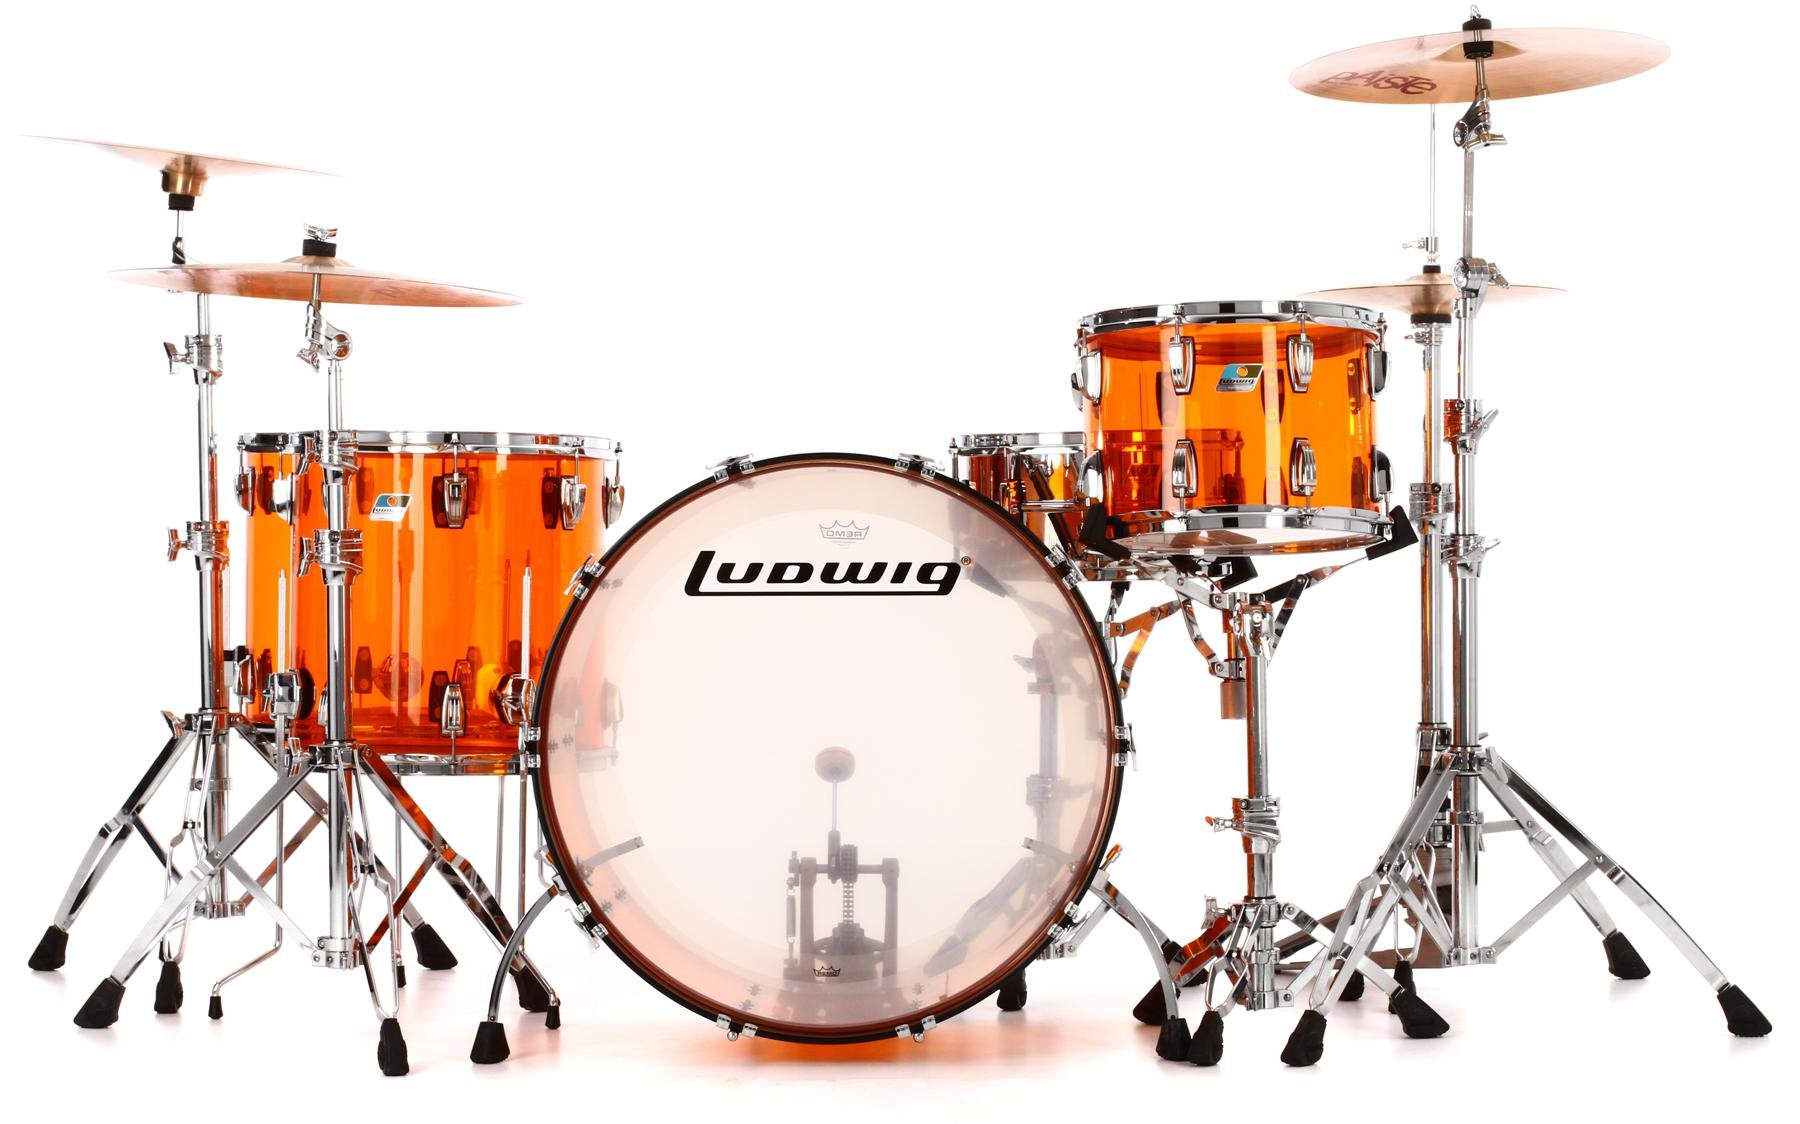 Ludwig Vistalite John Bonham Zep Set Shell Pack With Snare Drum Diagram Of A Kit This Shows The Parts And Names Amber Image 1